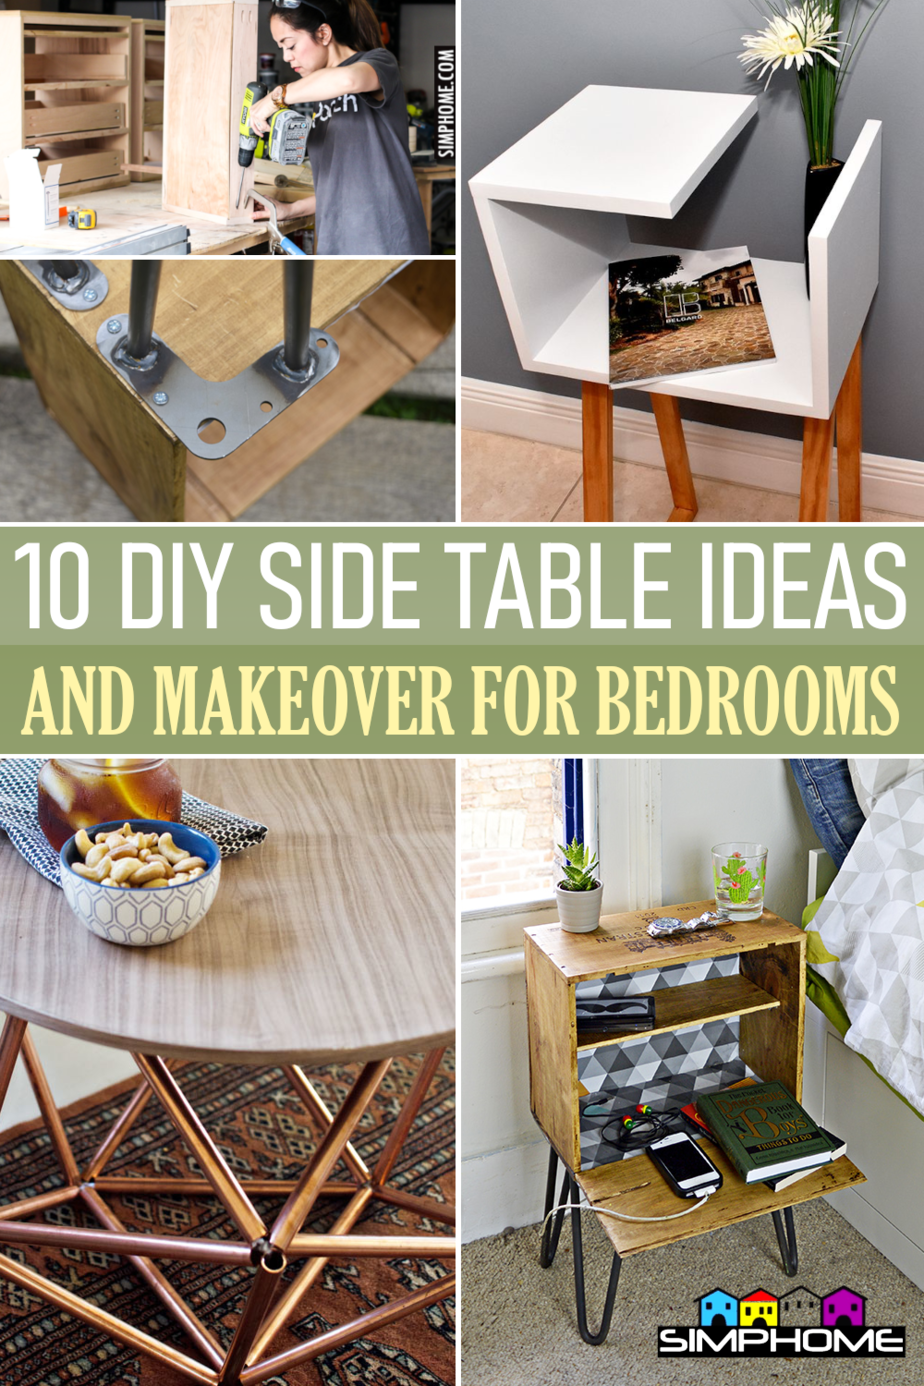 10 DIY Side Table for Bedroom Ideas via Simphome.comFeatured Image